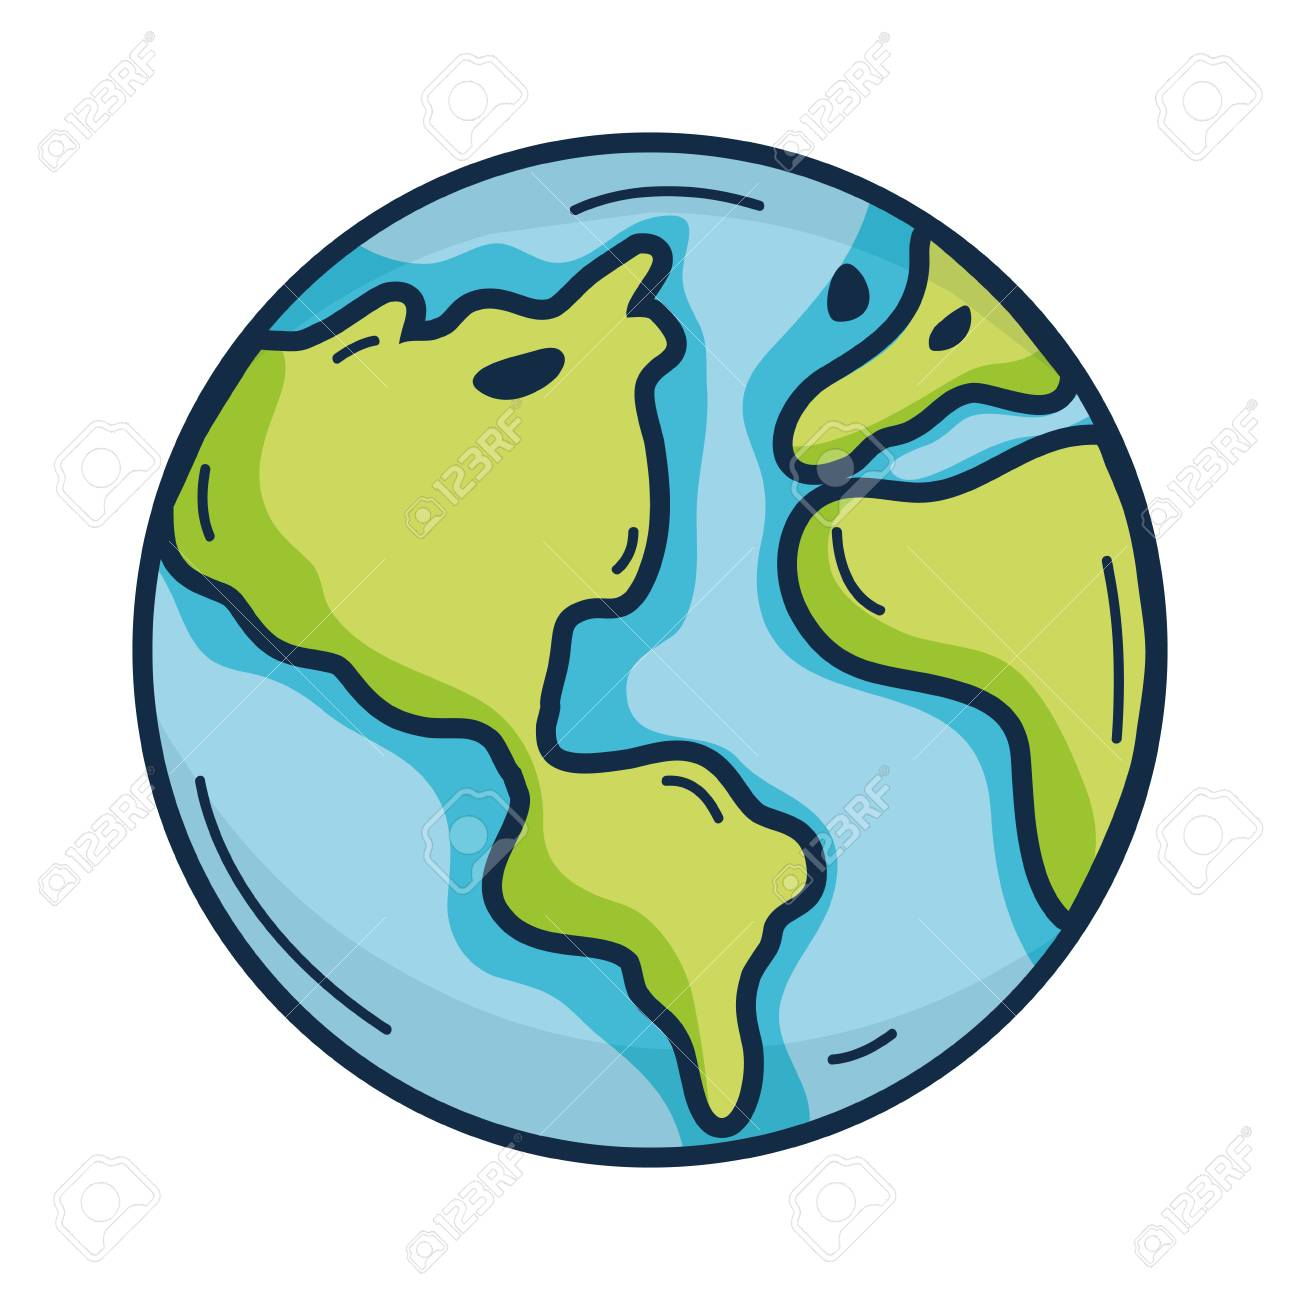 Earth Planet To Natural Ecology Care Royalty Free Cliparts Vectors And Stock Illustration Image 79888917